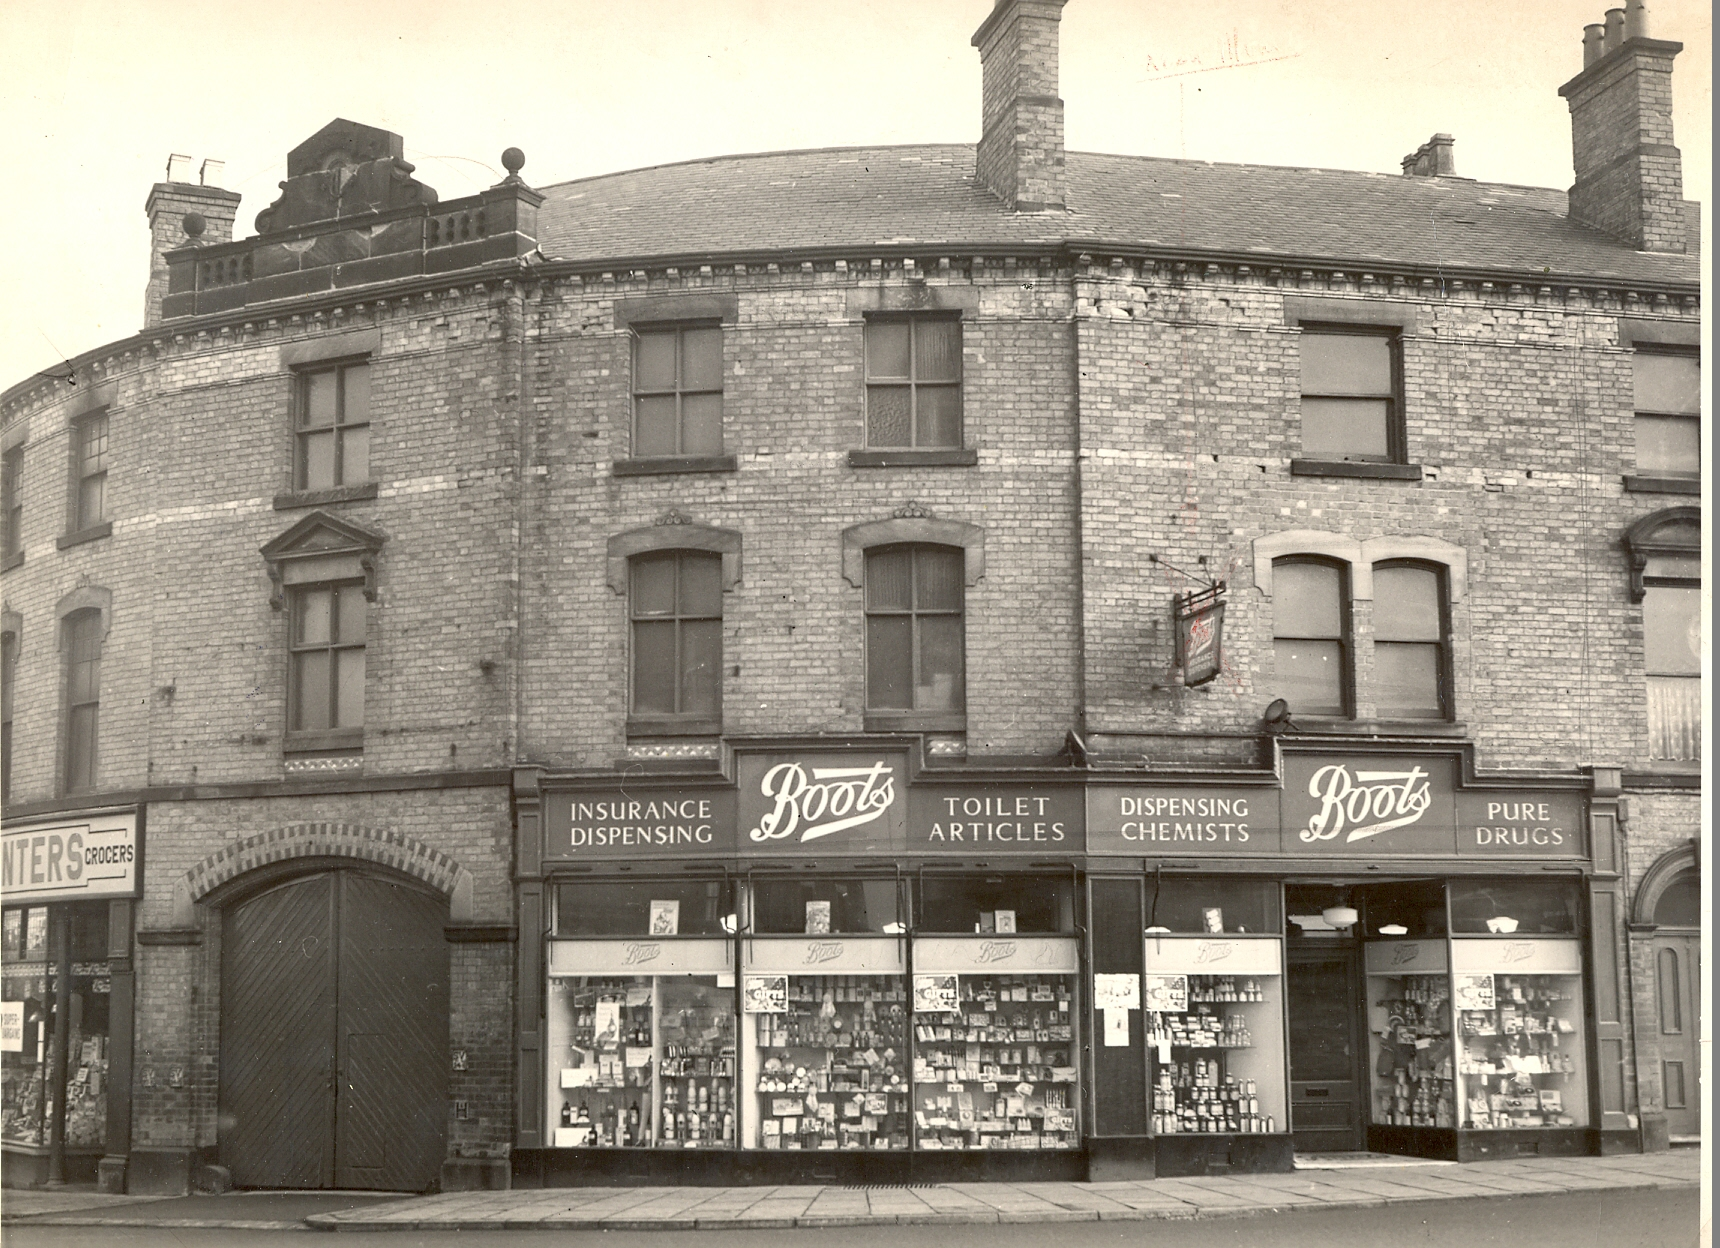 Boots Ripley store, 1953